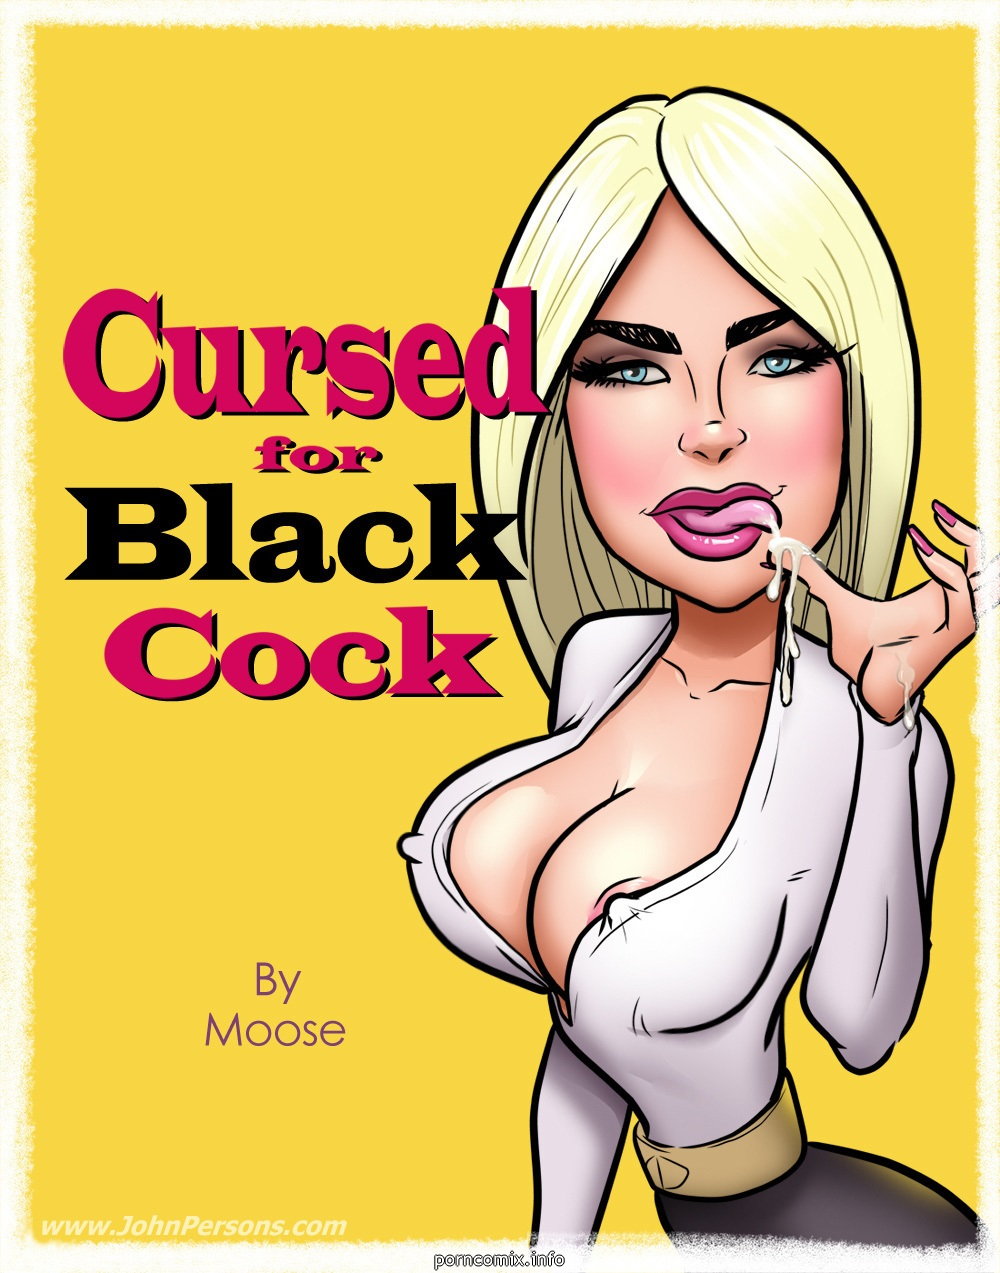 Cursed for Black Cock